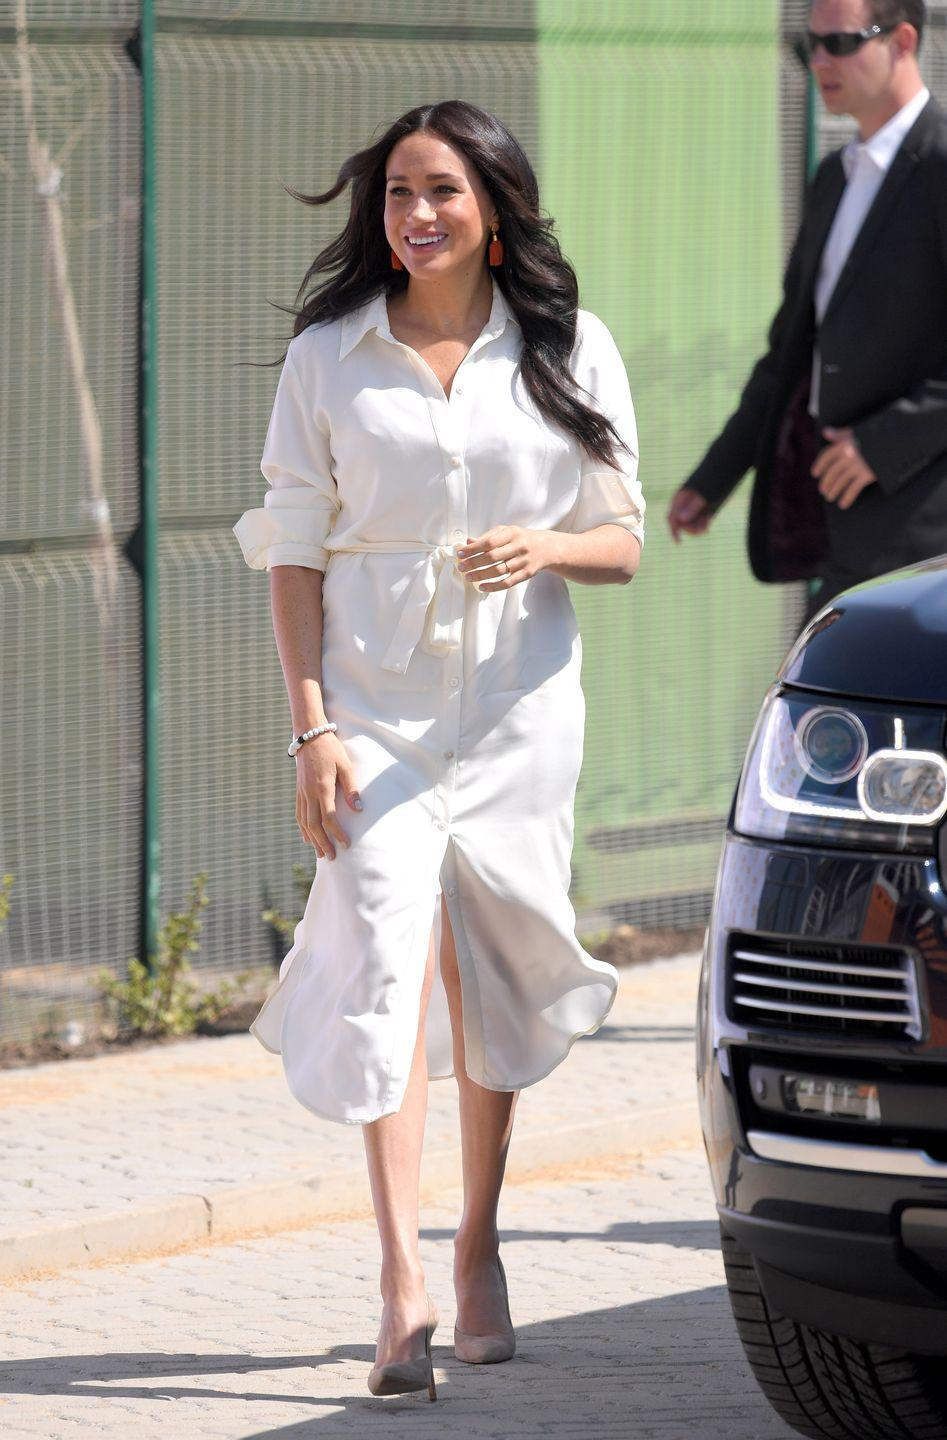 """<p>Perhaps a white shirt dress is more your speed. The Duchess wore this take on the button down while visiting Johannesberg, South Africa. The garment is by local brand Hannah Lavery, whose site now calls it the """"Meghan dress."""" Here, find the original dress (which has been known to sell out), plus a few similar options. </p><p><a class=""""link rapid-noclick-resp"""" href=""""https://www.hannahlavery.co.za/collections/dresses/products/tencilshirtdress"""" rel=""""nofollow noopener"""" target=""""_blank"""" data-ylk=""""slk:Shop Now"""">Shop Now</a></p><p><a class=""""link rapid-noclick-resp"""" href=""""https://go.redirectingat.com?id=74968X1596630&url=https%3A%2F%2Fwww.jcrew.com%2Fus%2Fp%2Fwomens_category%2Fdressesandjumpsuits%2Frelaxedfit-crisp-cotton-poplin-shirtdress%2FAY158&sref=https%3A%2F%2Fwww.elle.com%2Ffashion%2Fshopping%2Fg36477134%2Fmeghan-markle-white-button-down-shirts%2F"""" rel=""""nofollow noopener"""" target=""""_blank"""" data-ylk=""""slk:Shop a Similar Style"""">Shop a Similar Style</a></p><p><a class=""""link rapid-noclick-resp"""" href=""""https://go.redirectingat.com?id=74968X1596630&url=https%3A%2F%2Fwww.bergdorfgoodman.com%2Fp%2Flagence-cameron-linen-long-shirtdress-prod165150084&sref=https%3A%2F%2Fwww.elle.com%2Ffashion%2Fshopping%2Fg36477134%2Fmeghan-markle-white-button-down-shirts%2F"""" rel=""""nofollow noopener"""" target=""""_blank"""" data-ylk=""""slk:Shop a Similar Style"""">Shop a Similar Style</a></p><p><a class=""""link rapid-noclick-resp"""" href=""""https://go.redirectingat.com?id=74968X1596630&url=https%3A%2F%2Fveronicabeard.com%2Fproducts%2Fcita-dress&sref=https%3A%2F%2Fwww.elle.com%2Ffashion%2Fshopping%2Fg36477134%2Fmeghan-markle-white-button-down-shirts%2F"""" rel=""""nofollow noopener"""" target=""""_blank"""" data-ylk=""""slk:Shop a Similar Style"""">Shop a Similar Style</a></p>"""